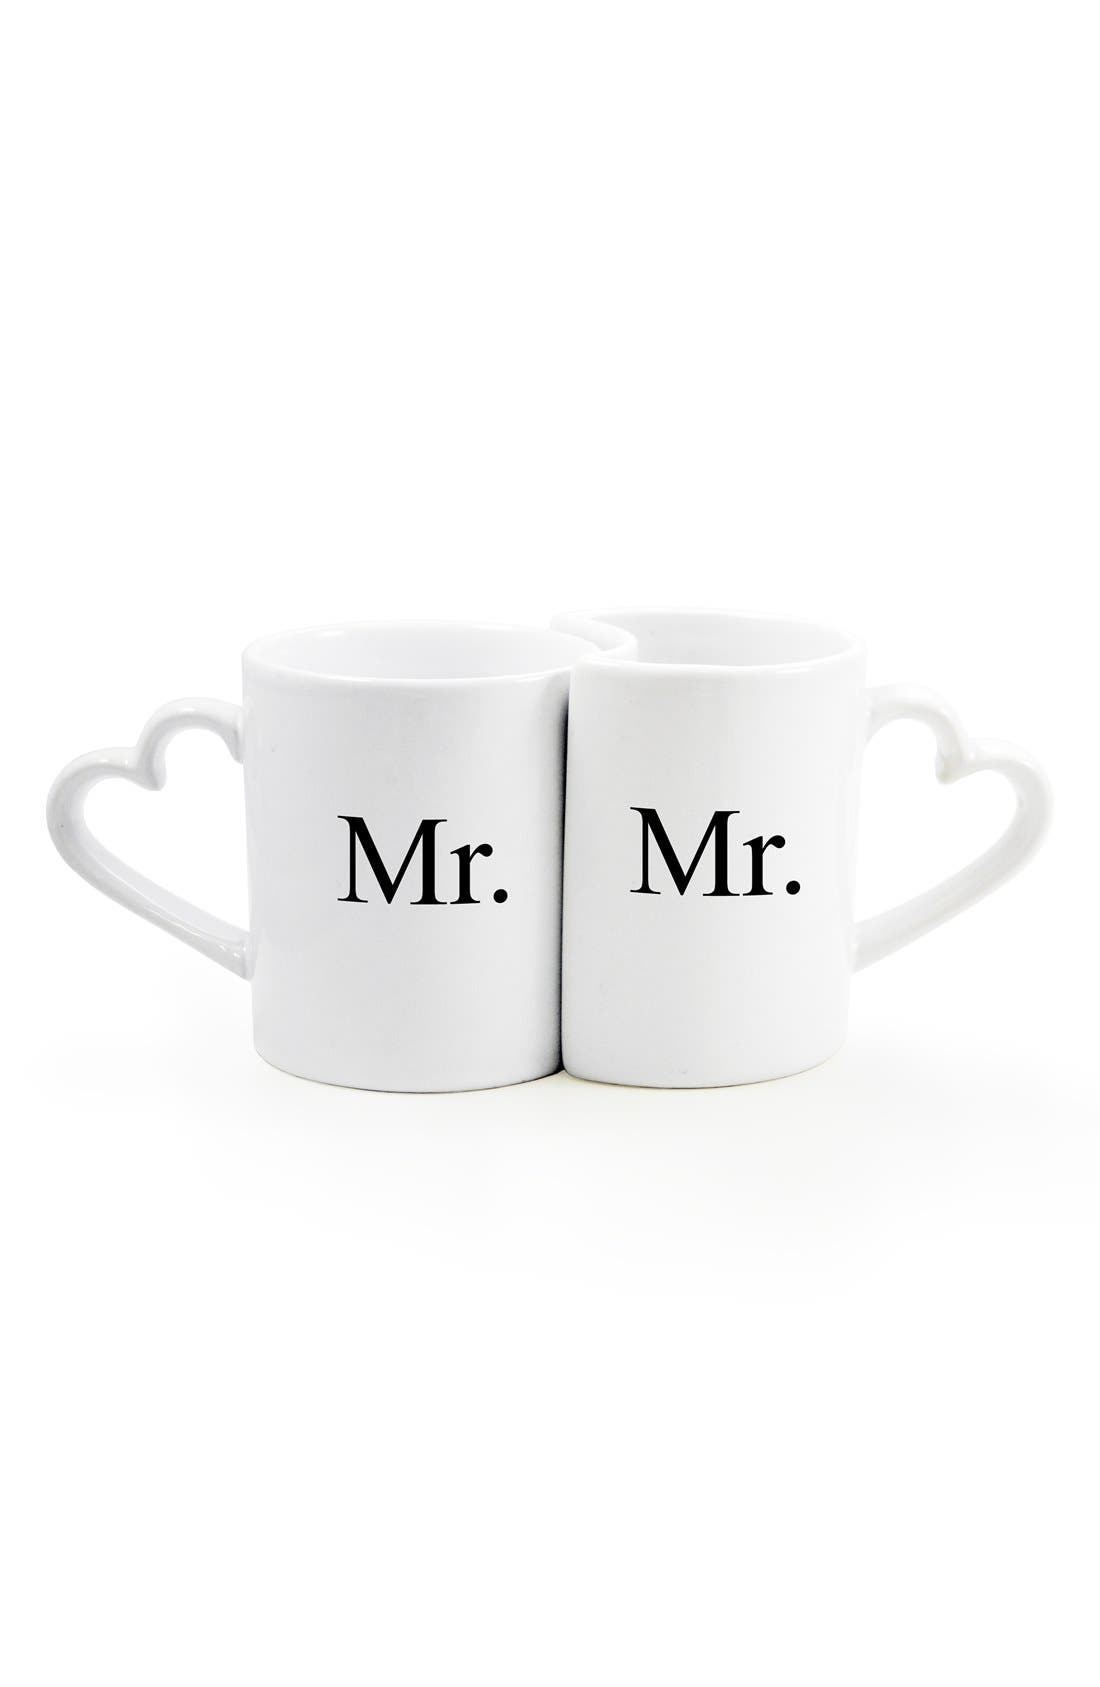 'For the Couple' Ceramic Coffee Mugs,                             Alternate thumbnail 2, color,                             Mr/ Mr